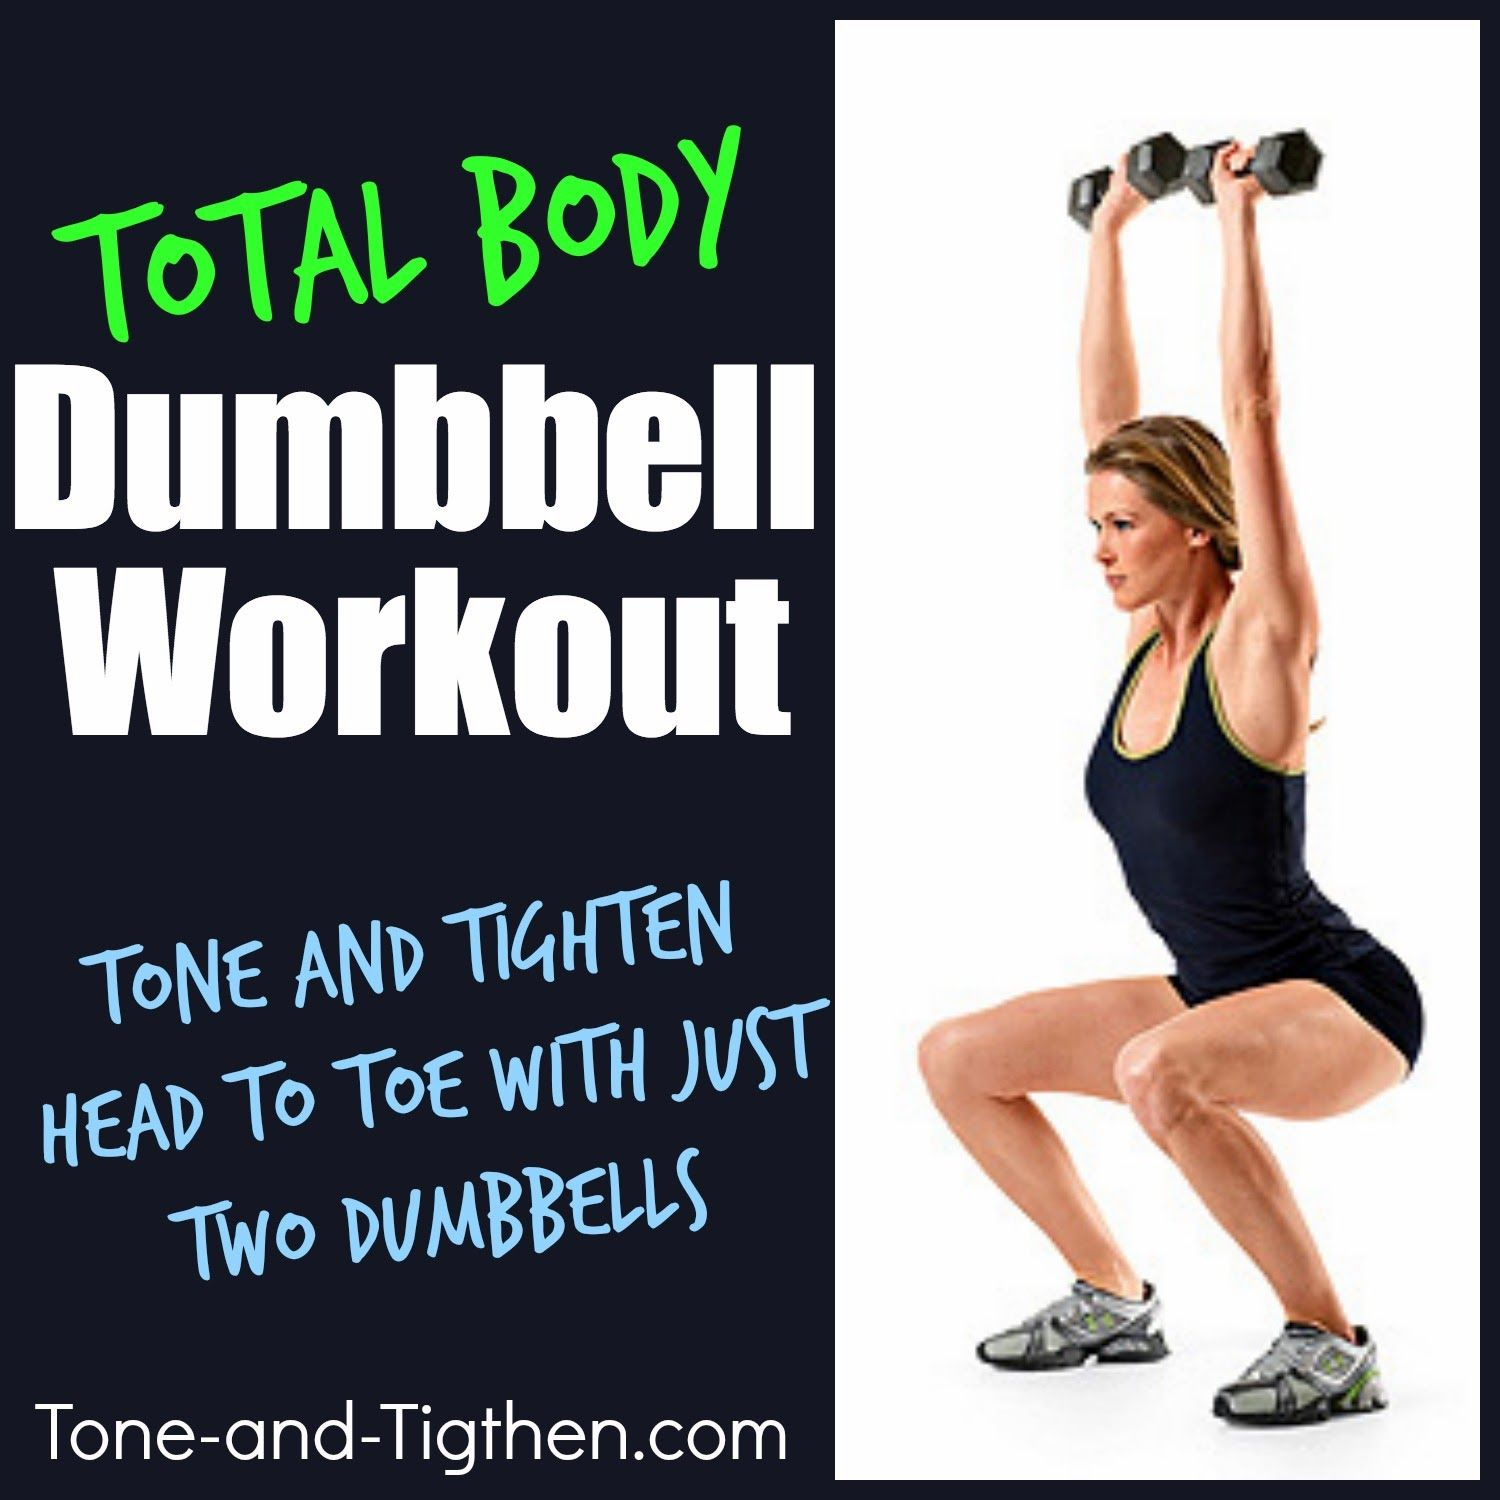 Total Body Dumbbell Workout from Tone-and-Tighten.com - all you need is one set of dumbbells